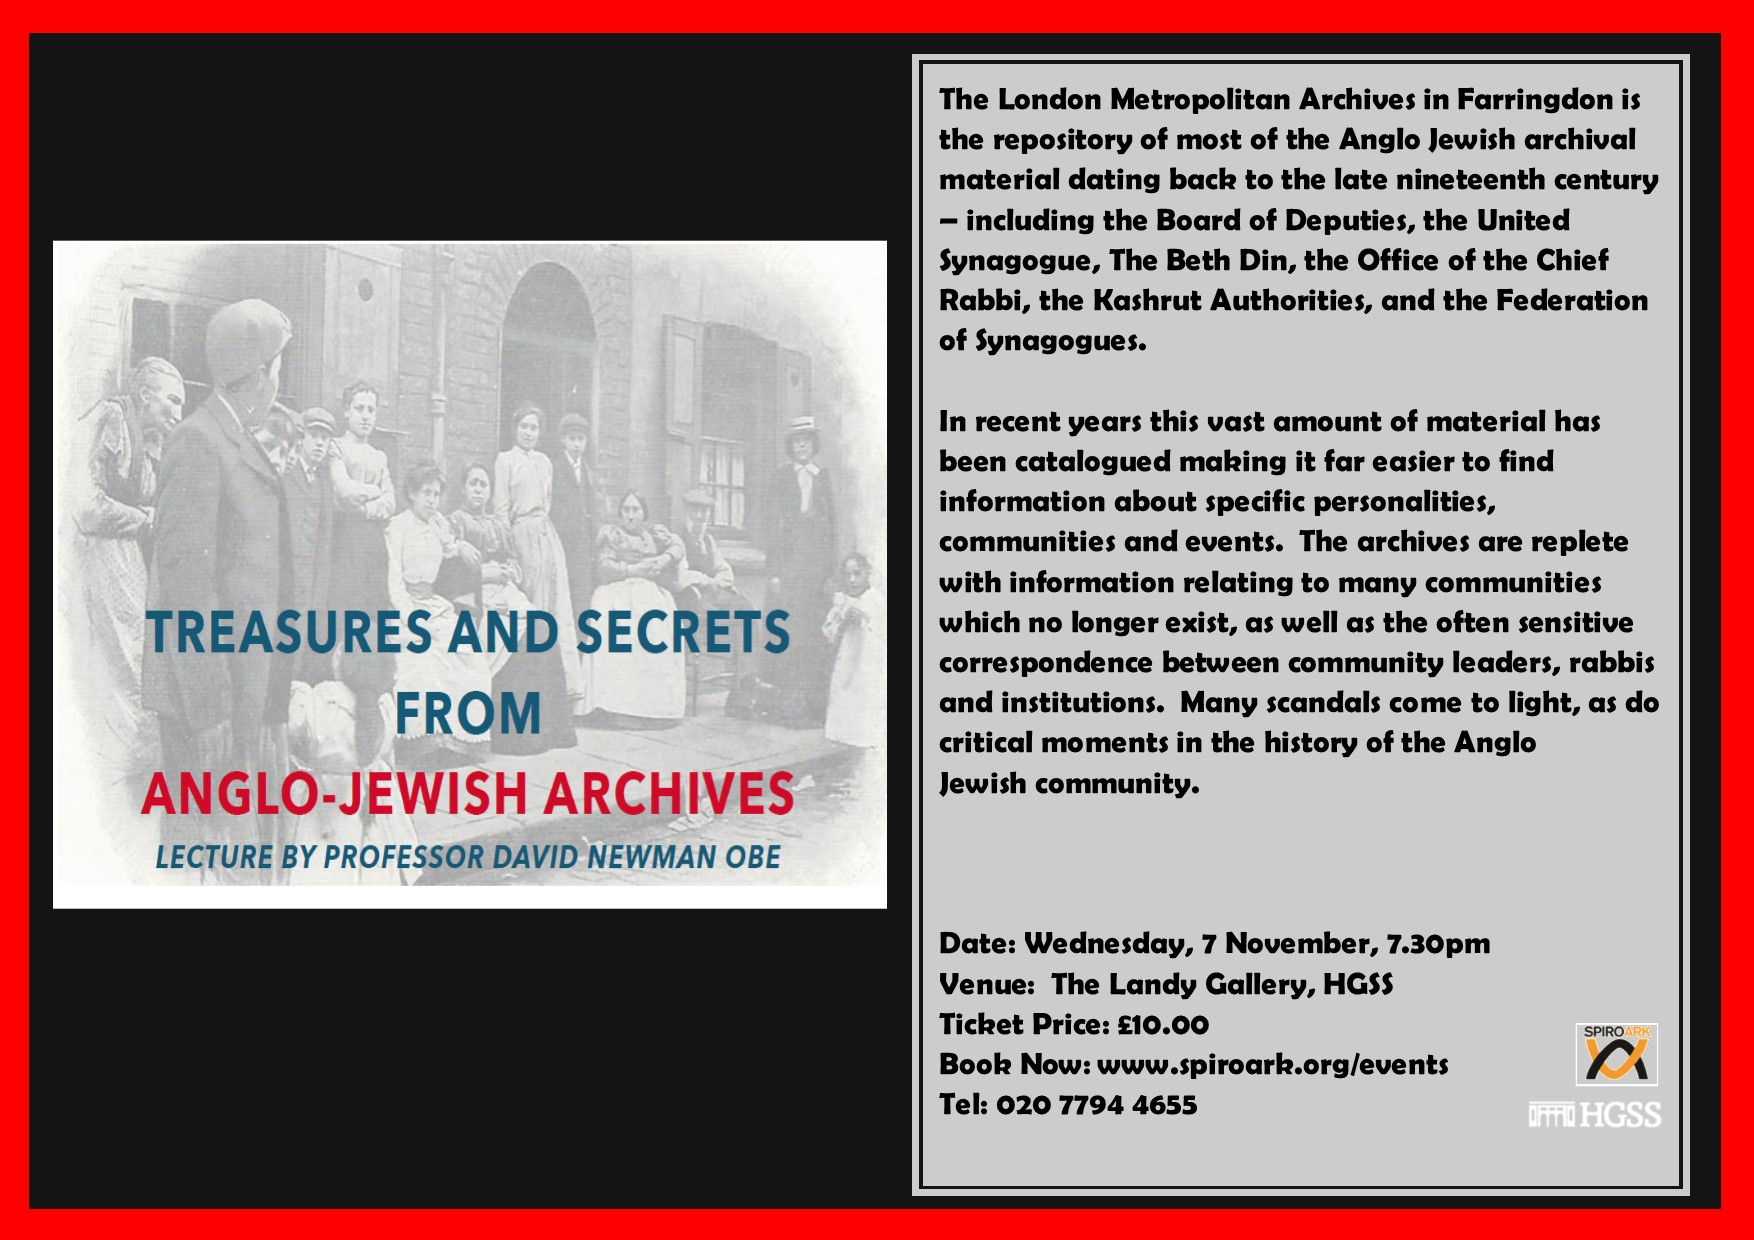 Spiro Ark - Treasures and Secrets from Anglo-Jewish Archives @ The Landy Gallery